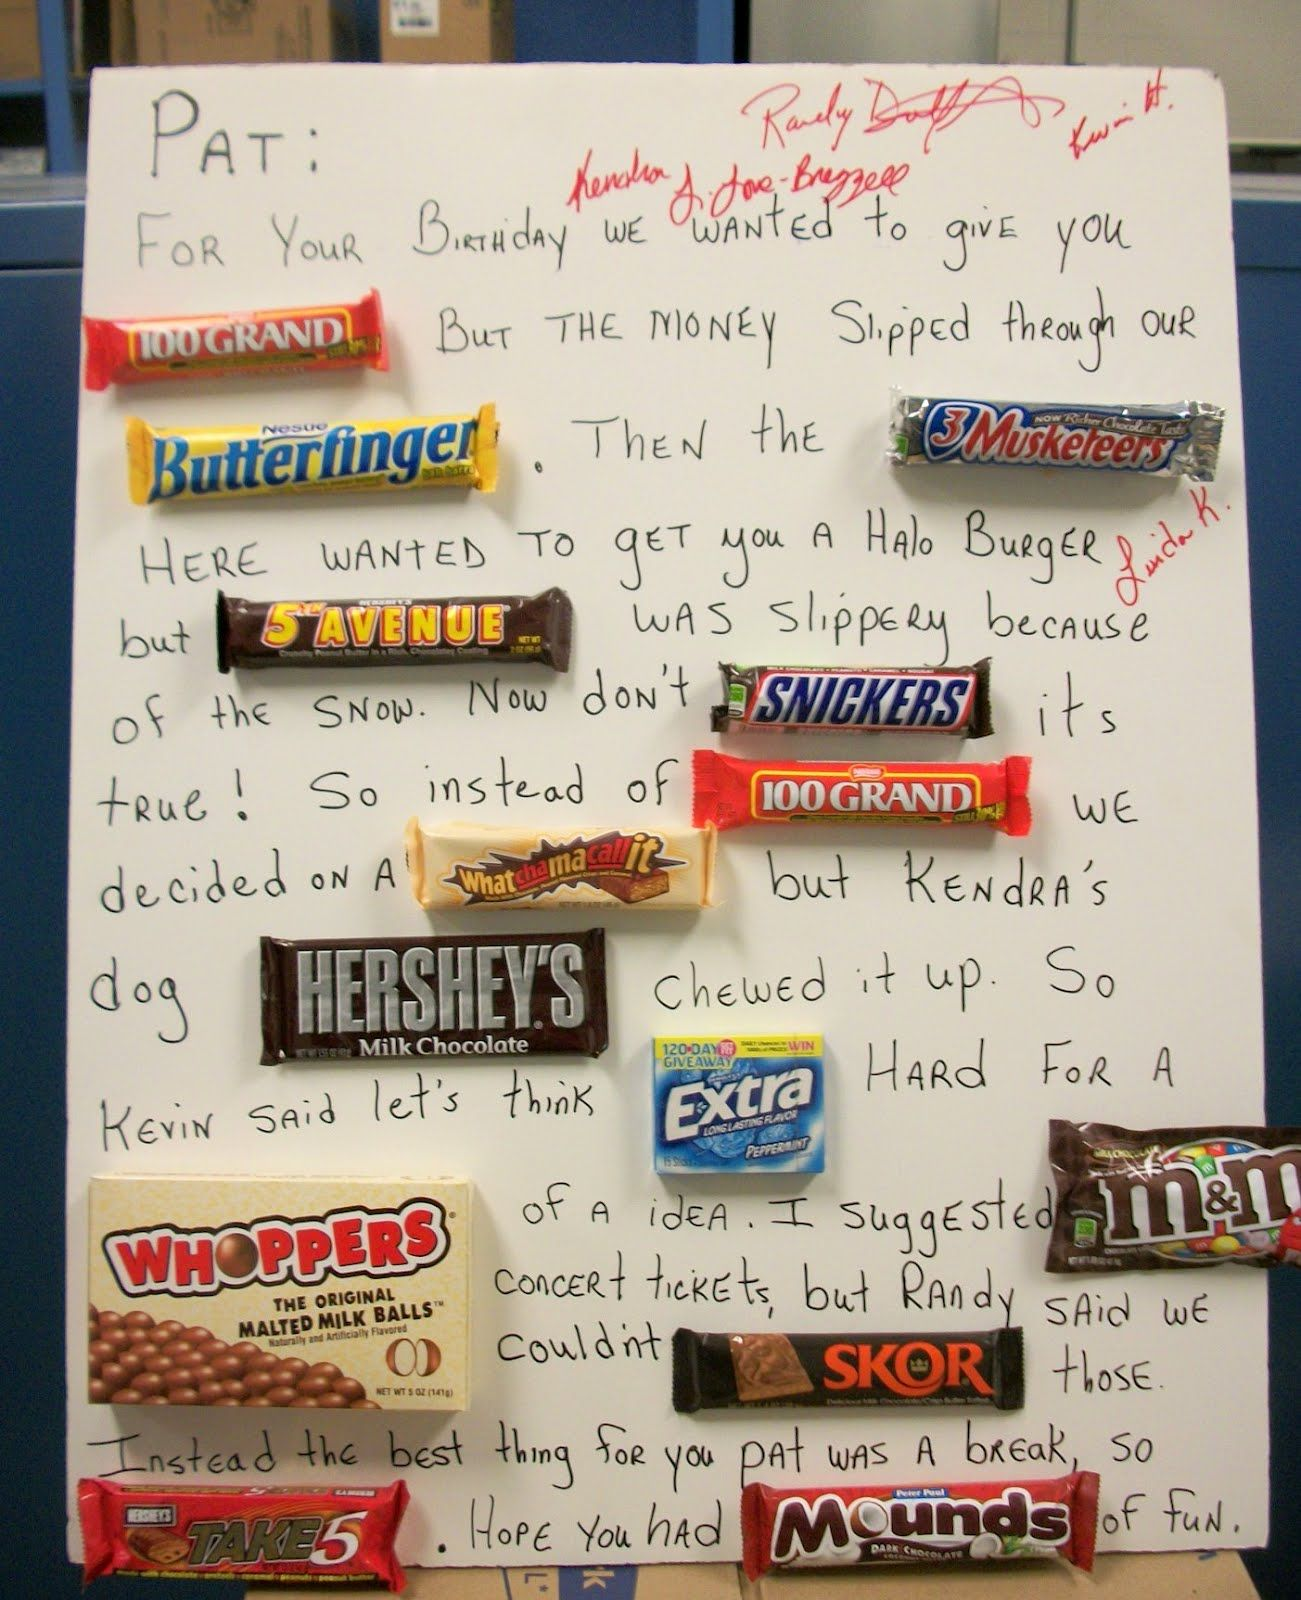 A Friend Of Mine At Work Had A Birthday Last Week That He Kept A Secret From Us All He Loves Chocolate And Cand Bar Card Candy Birthday Cards Candy Bar